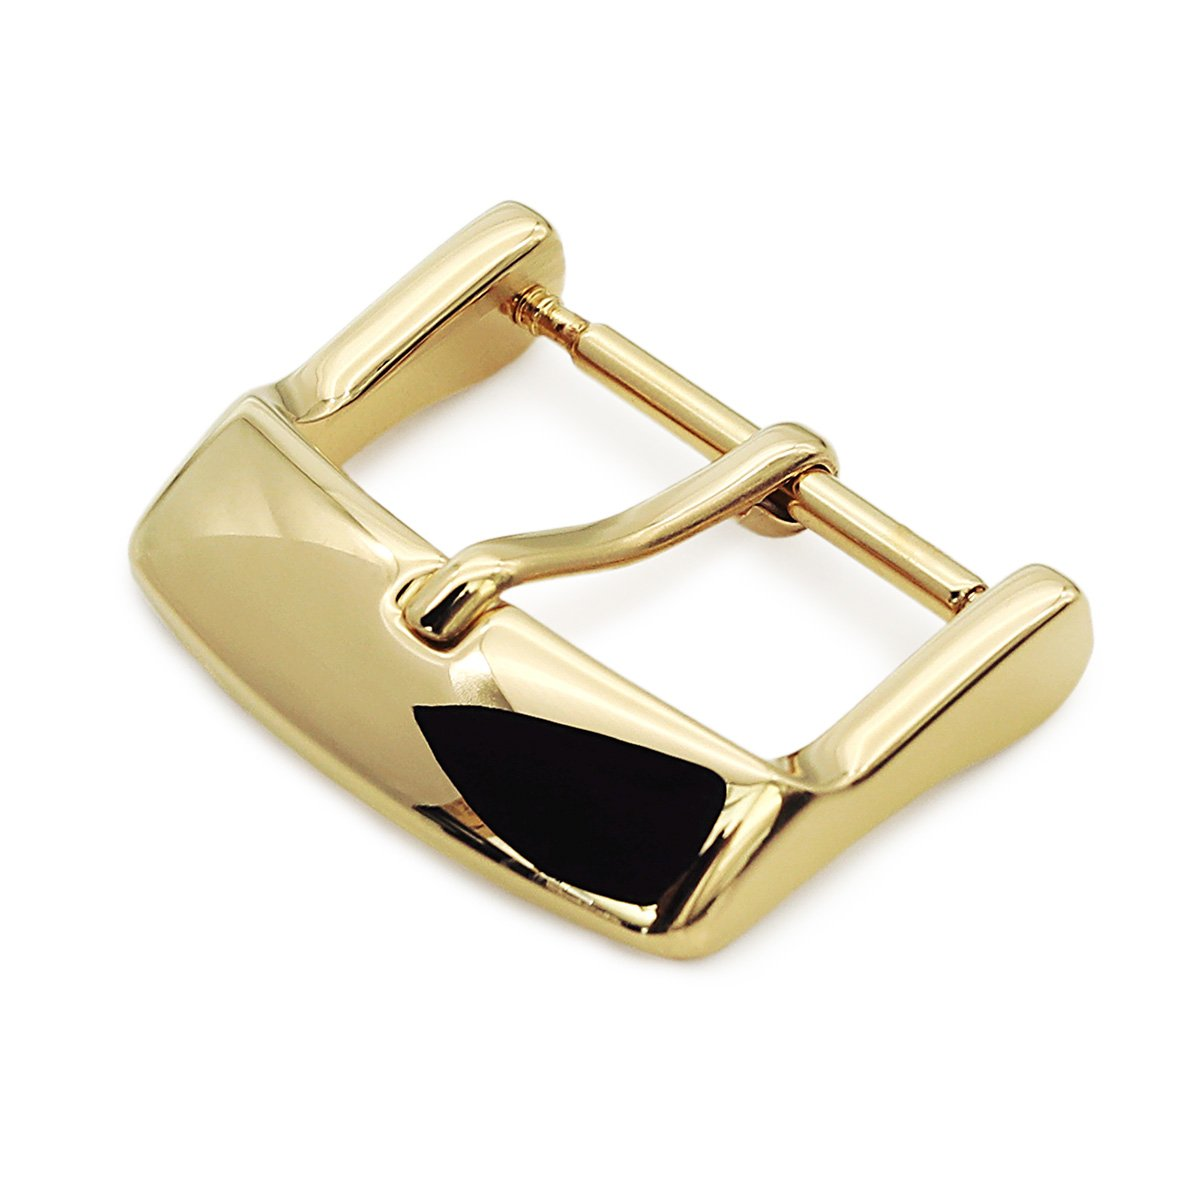 18mm 20mm #64 Sporty Tang Buckle for Leather Watch Strap Polished IP Gold Strapcode Buckles